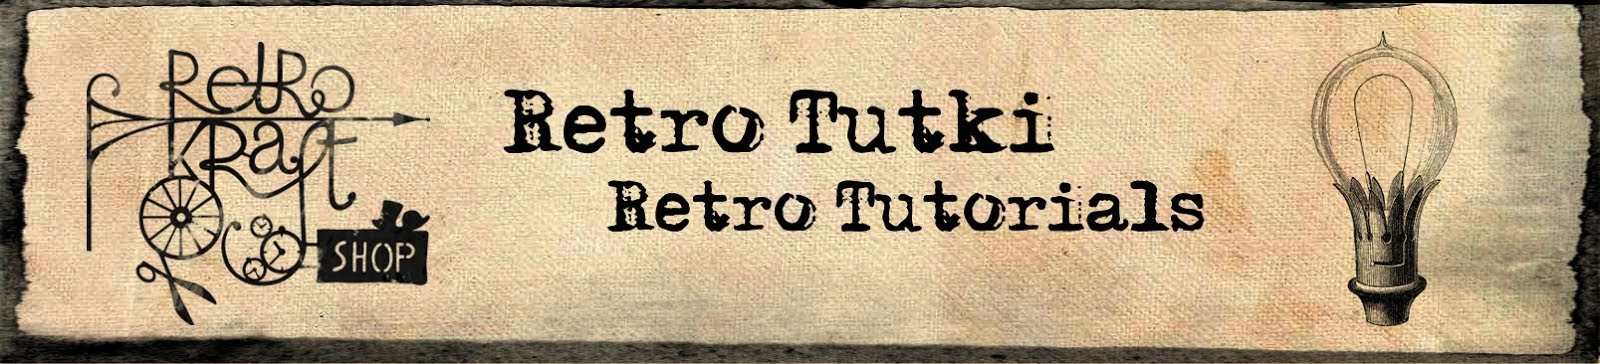 Retro Tutki / Retro Tutorials